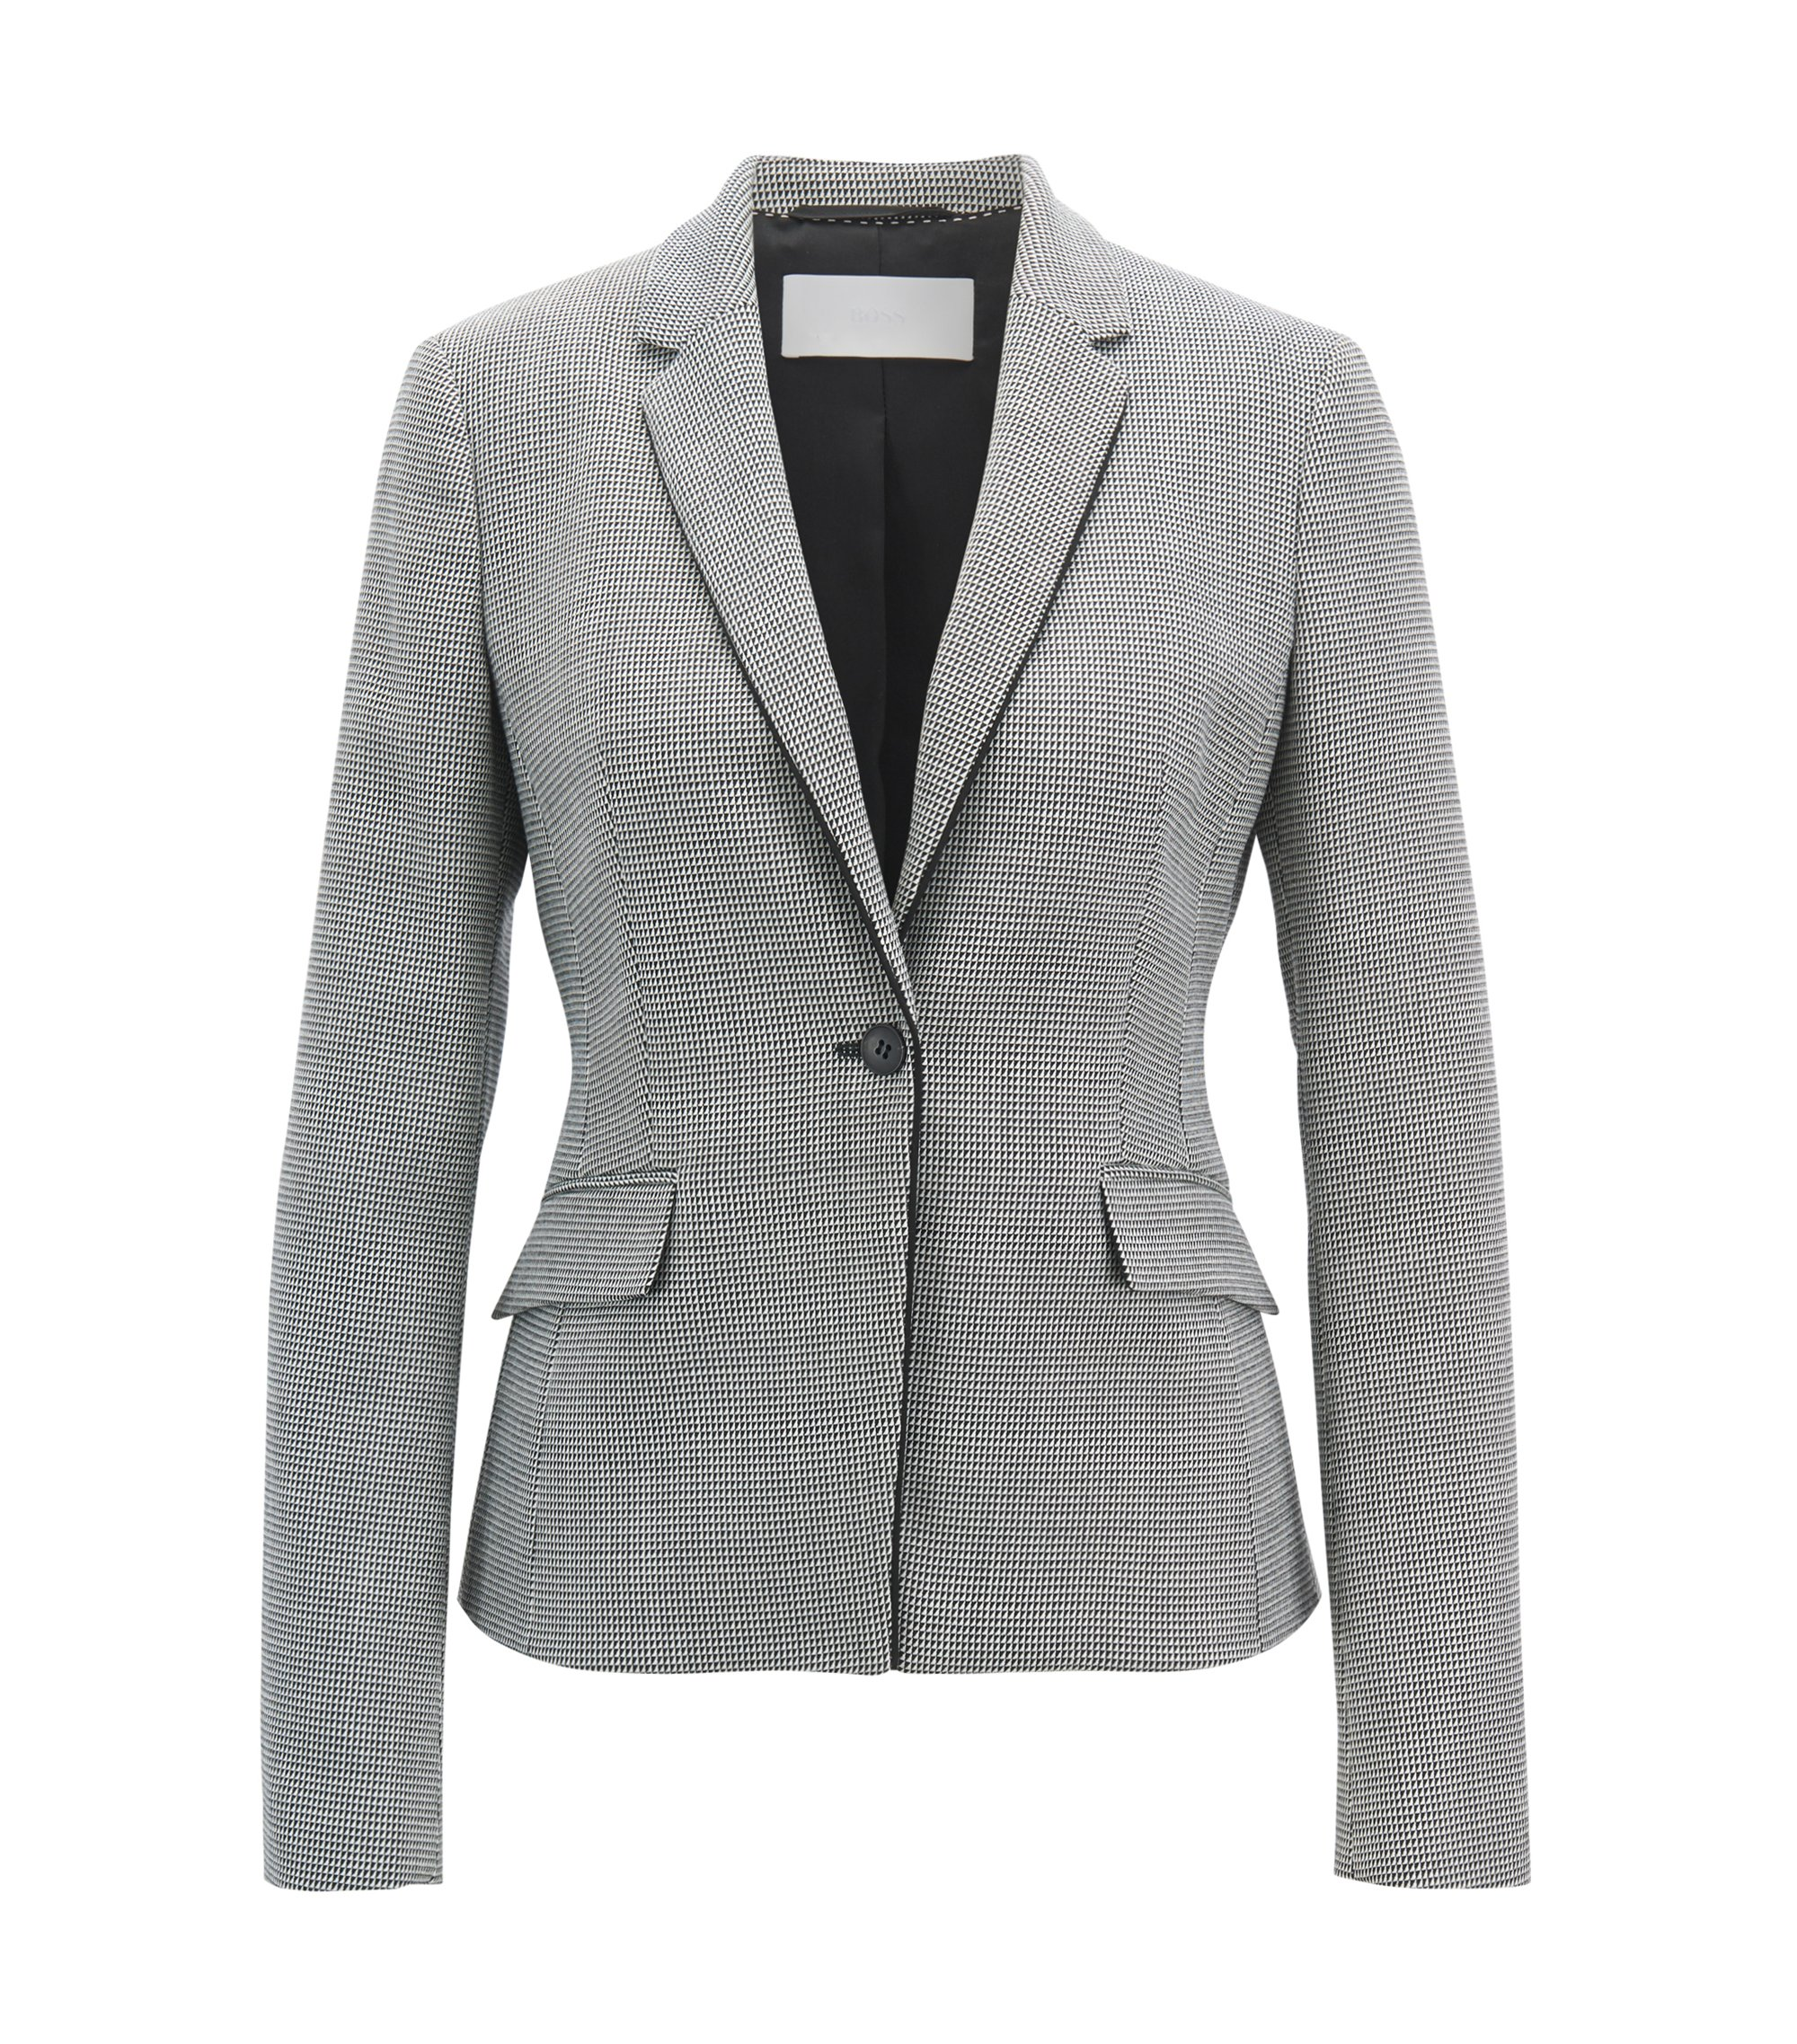 Regular-fit blazer in pepita-patterned virgin wool blend, Patterned